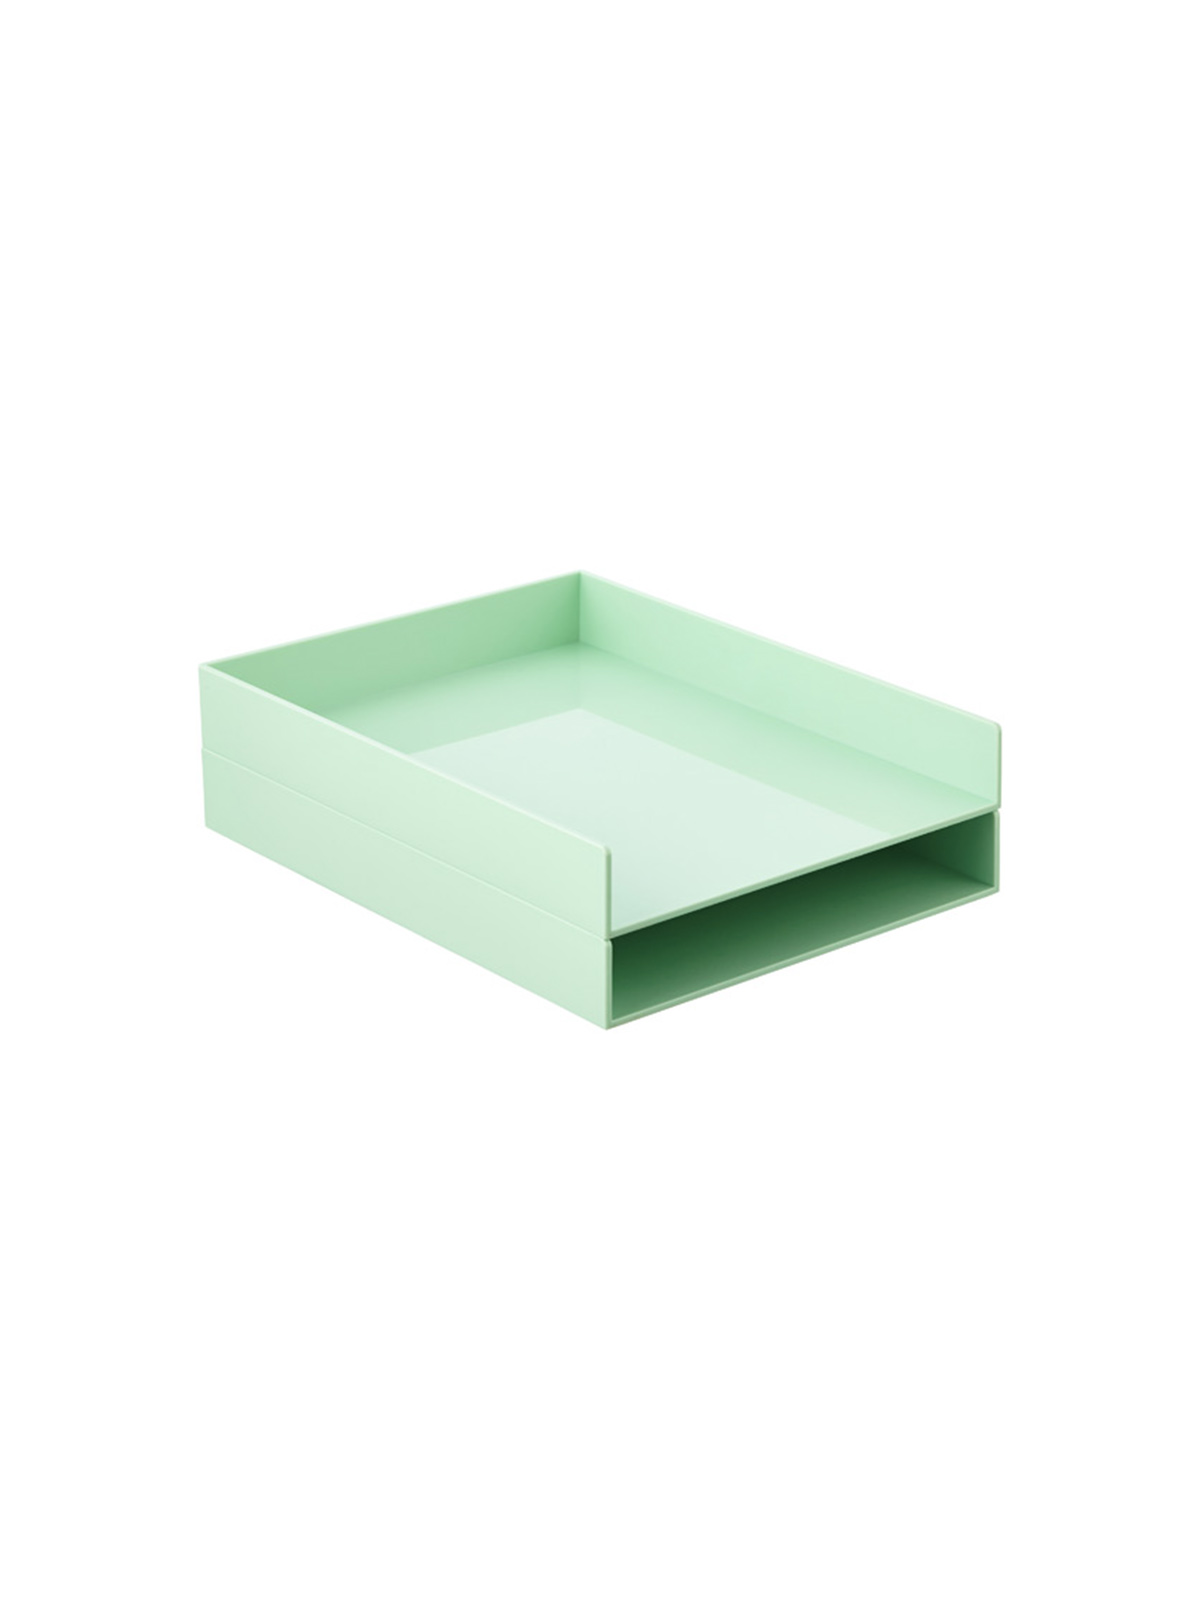 Kitchen Counter Organization Letter Tray in Mint